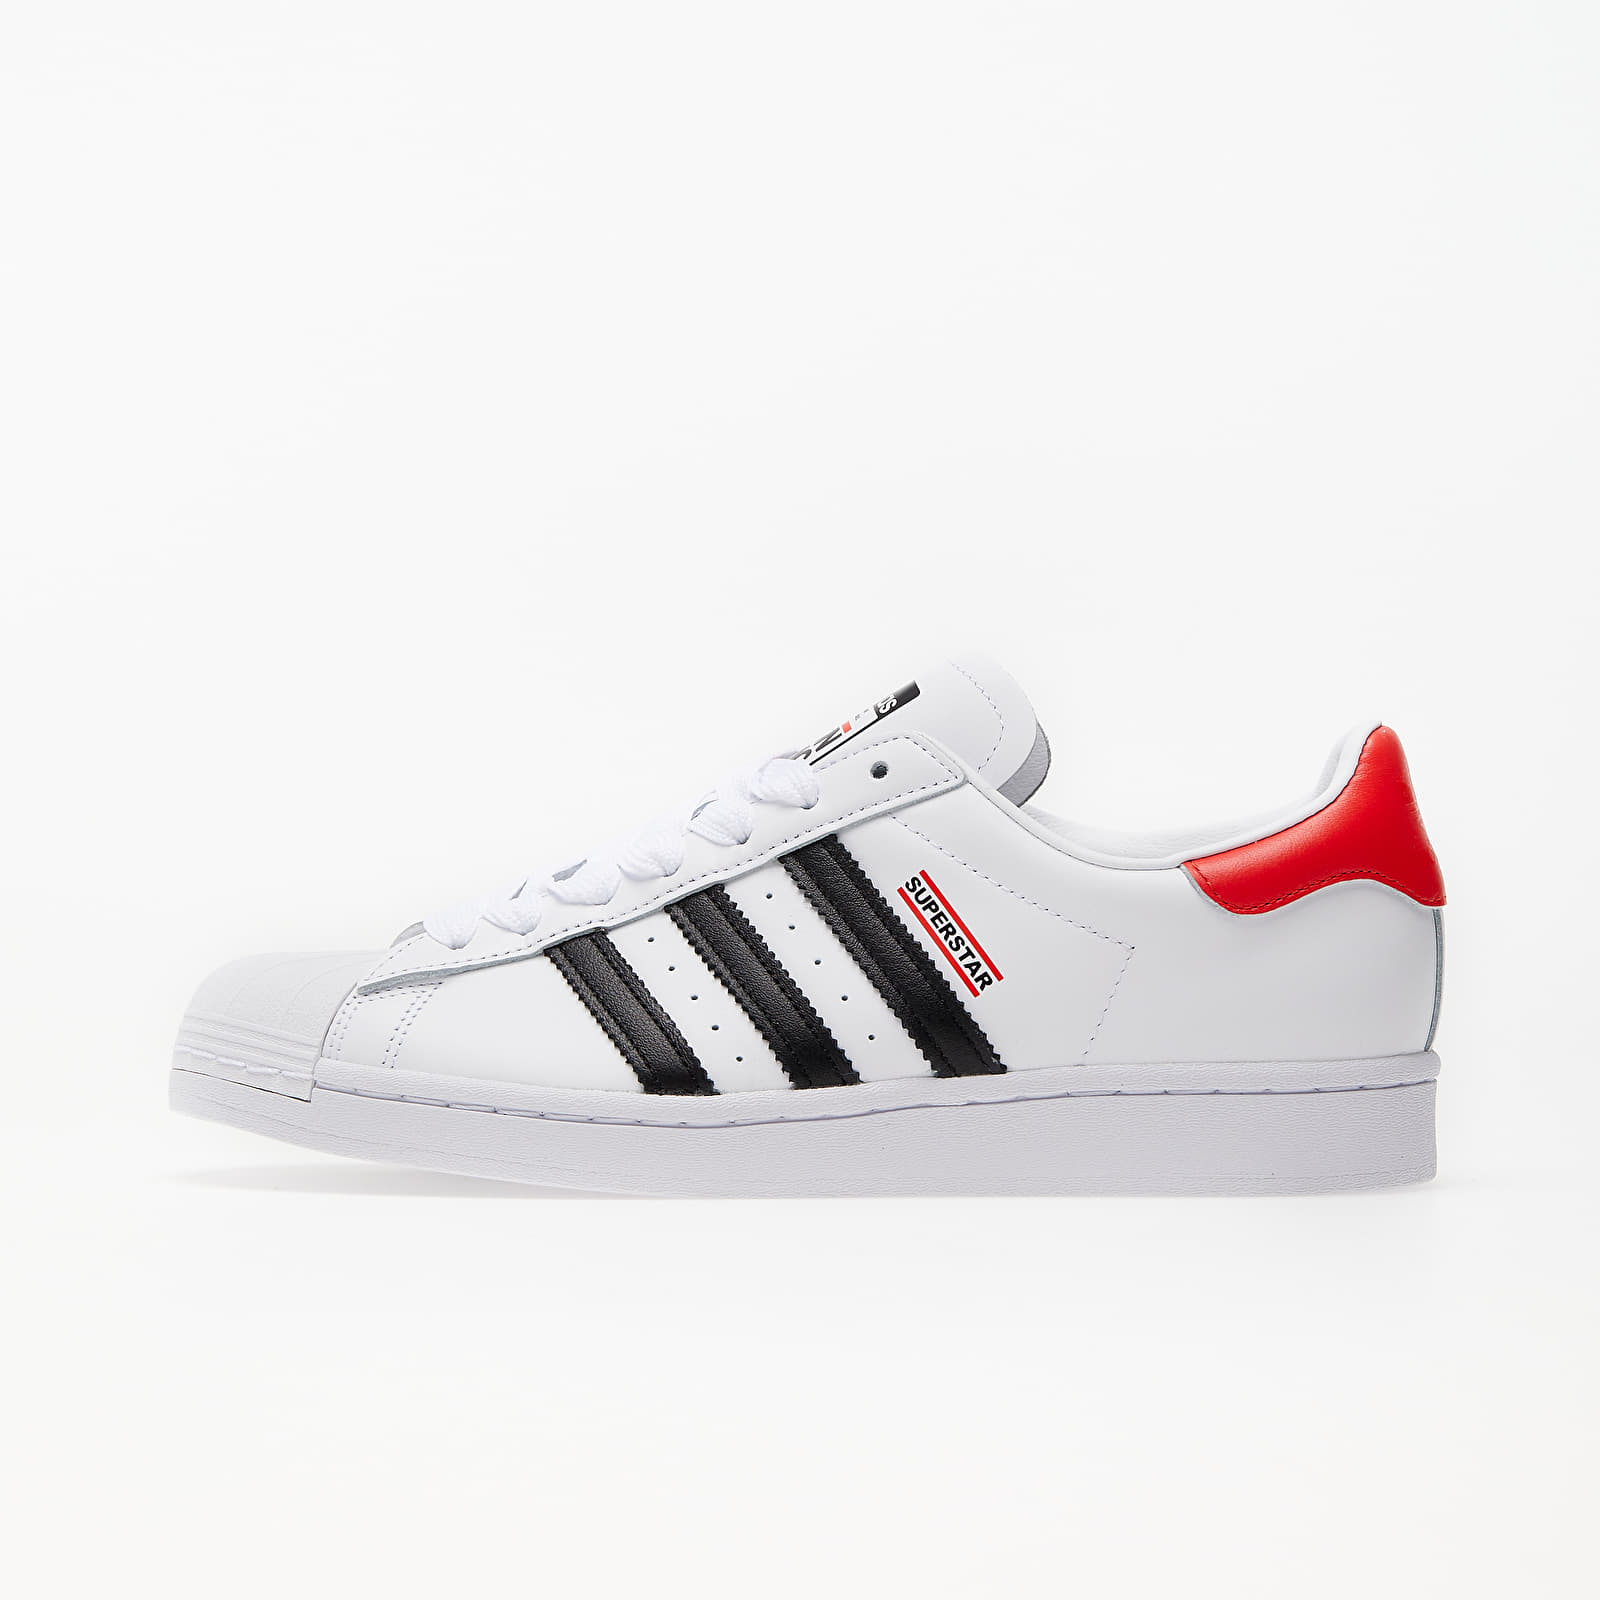 Chaussures et baskets homme adidas x RUN DMC Superstar 50 Ftw White/ Core Black/ Hi-Res Red